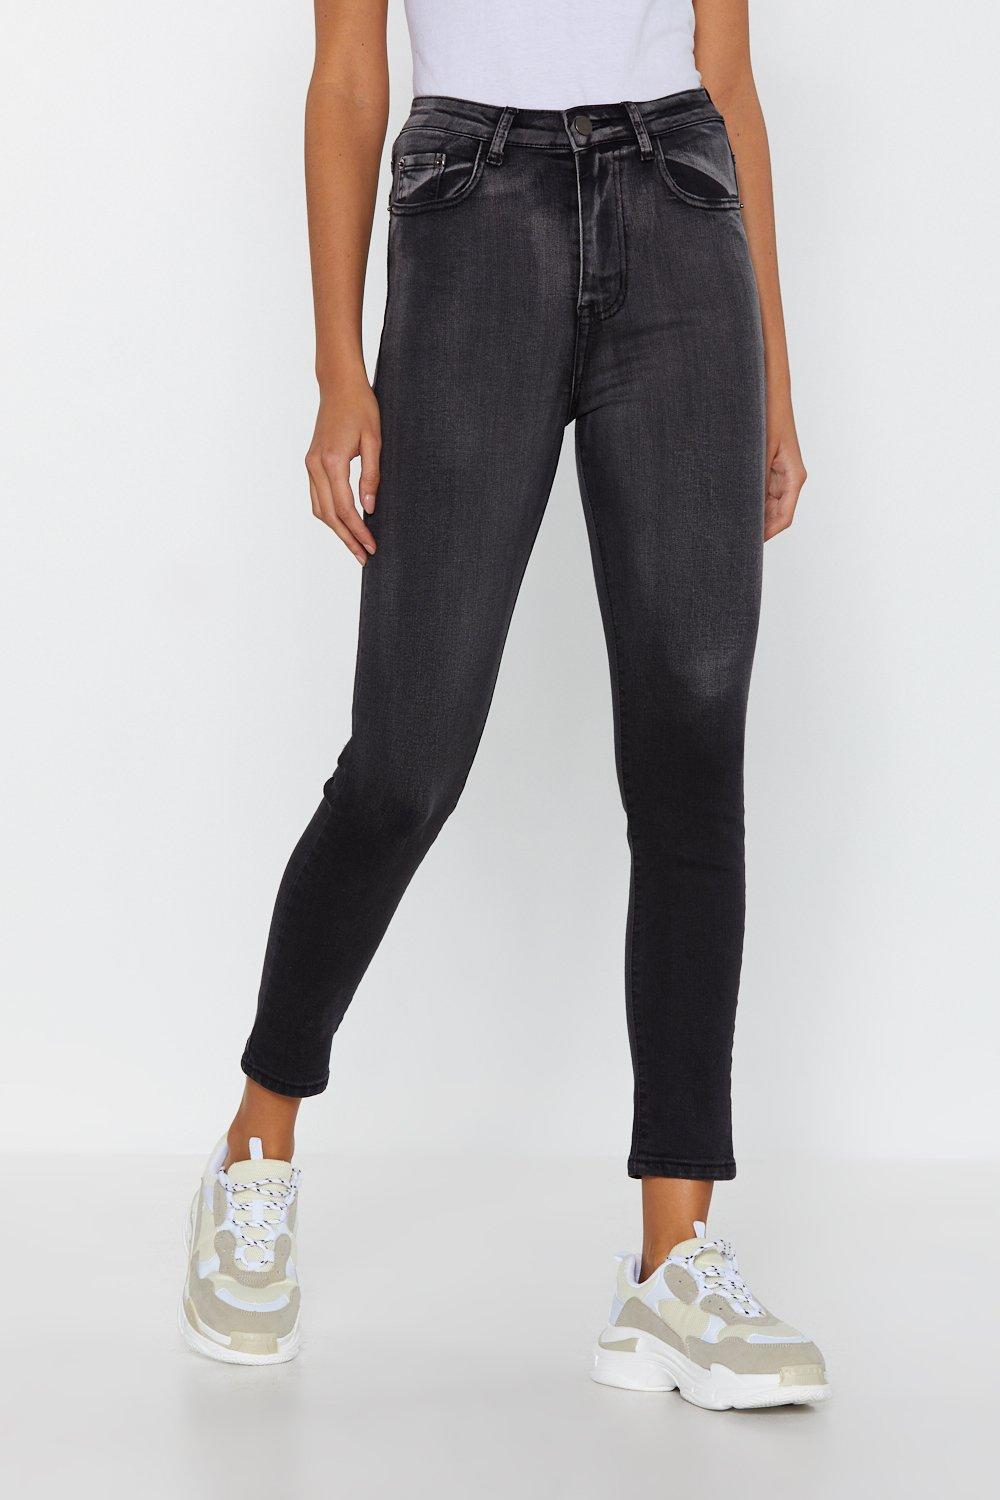 71ad66889e Womens Washed black Zip at Their Ankles Skinny Jeans. Hover to zoom